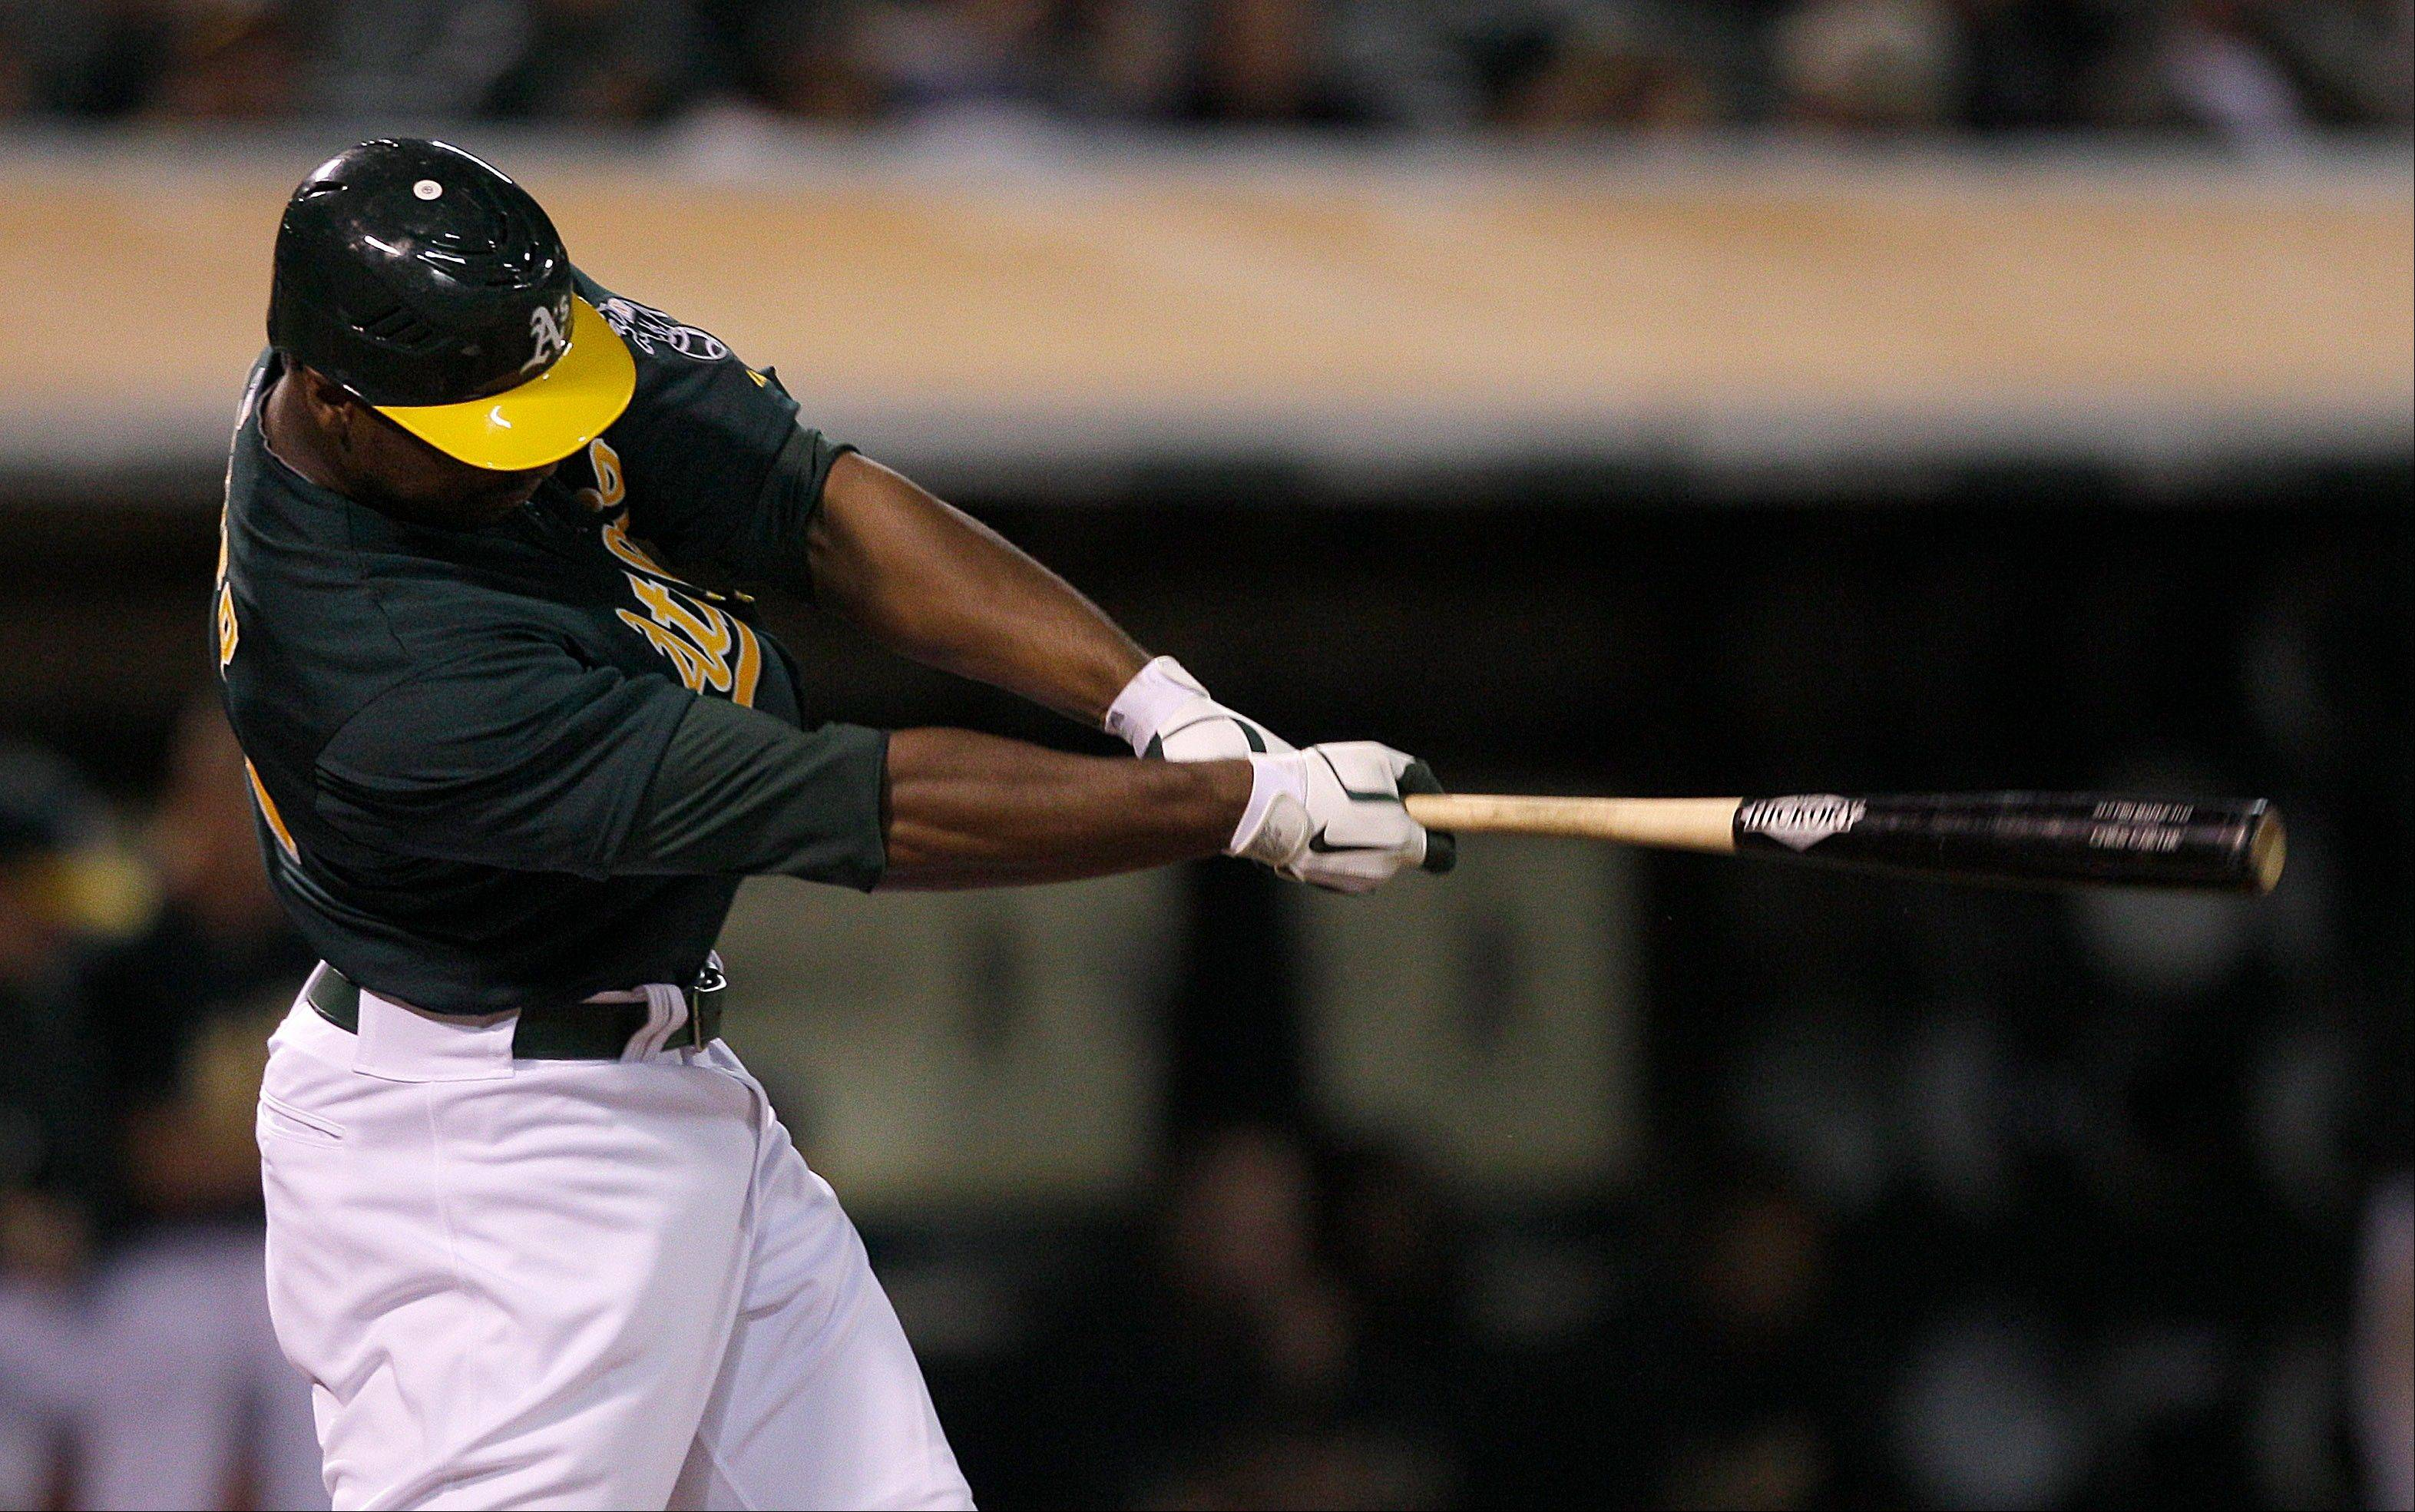 Oakland's Chris Carter hits a three-run home run during the 11th inning Friday at home against Seattle.